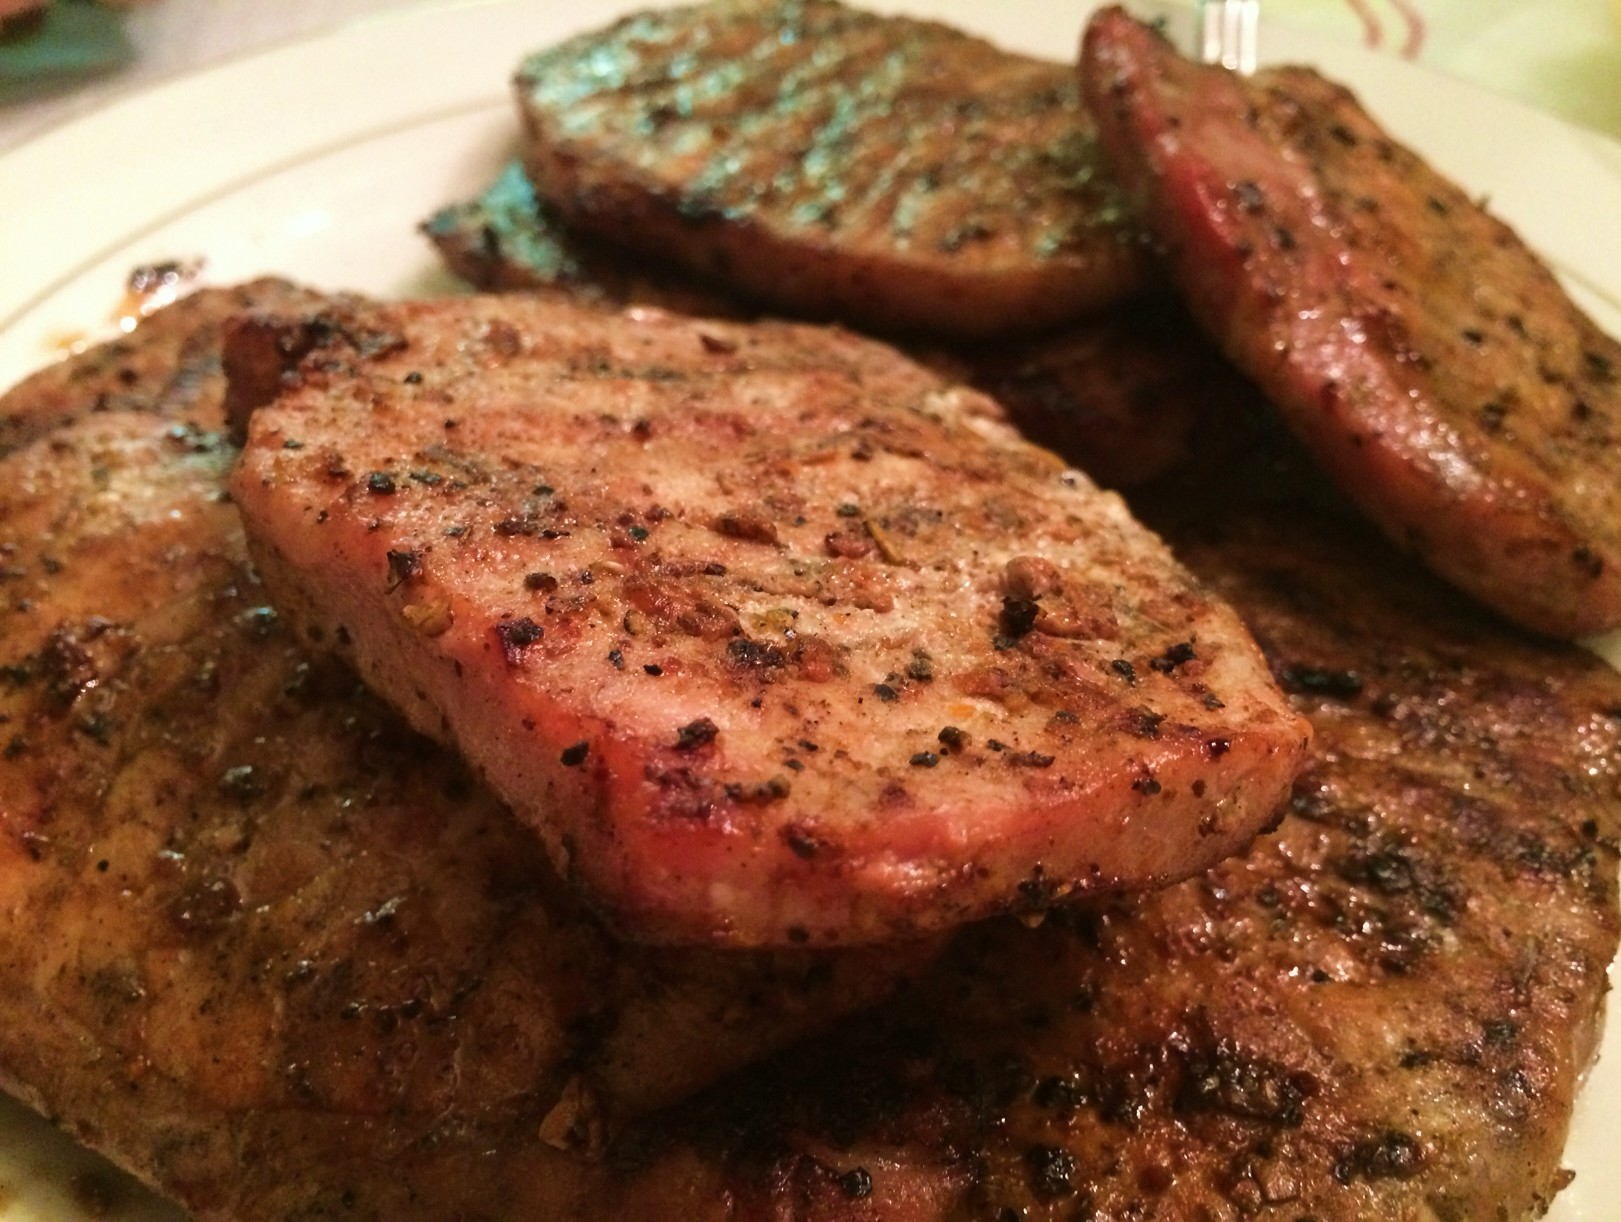 Perfectly Grilled pork chops on a serving dish